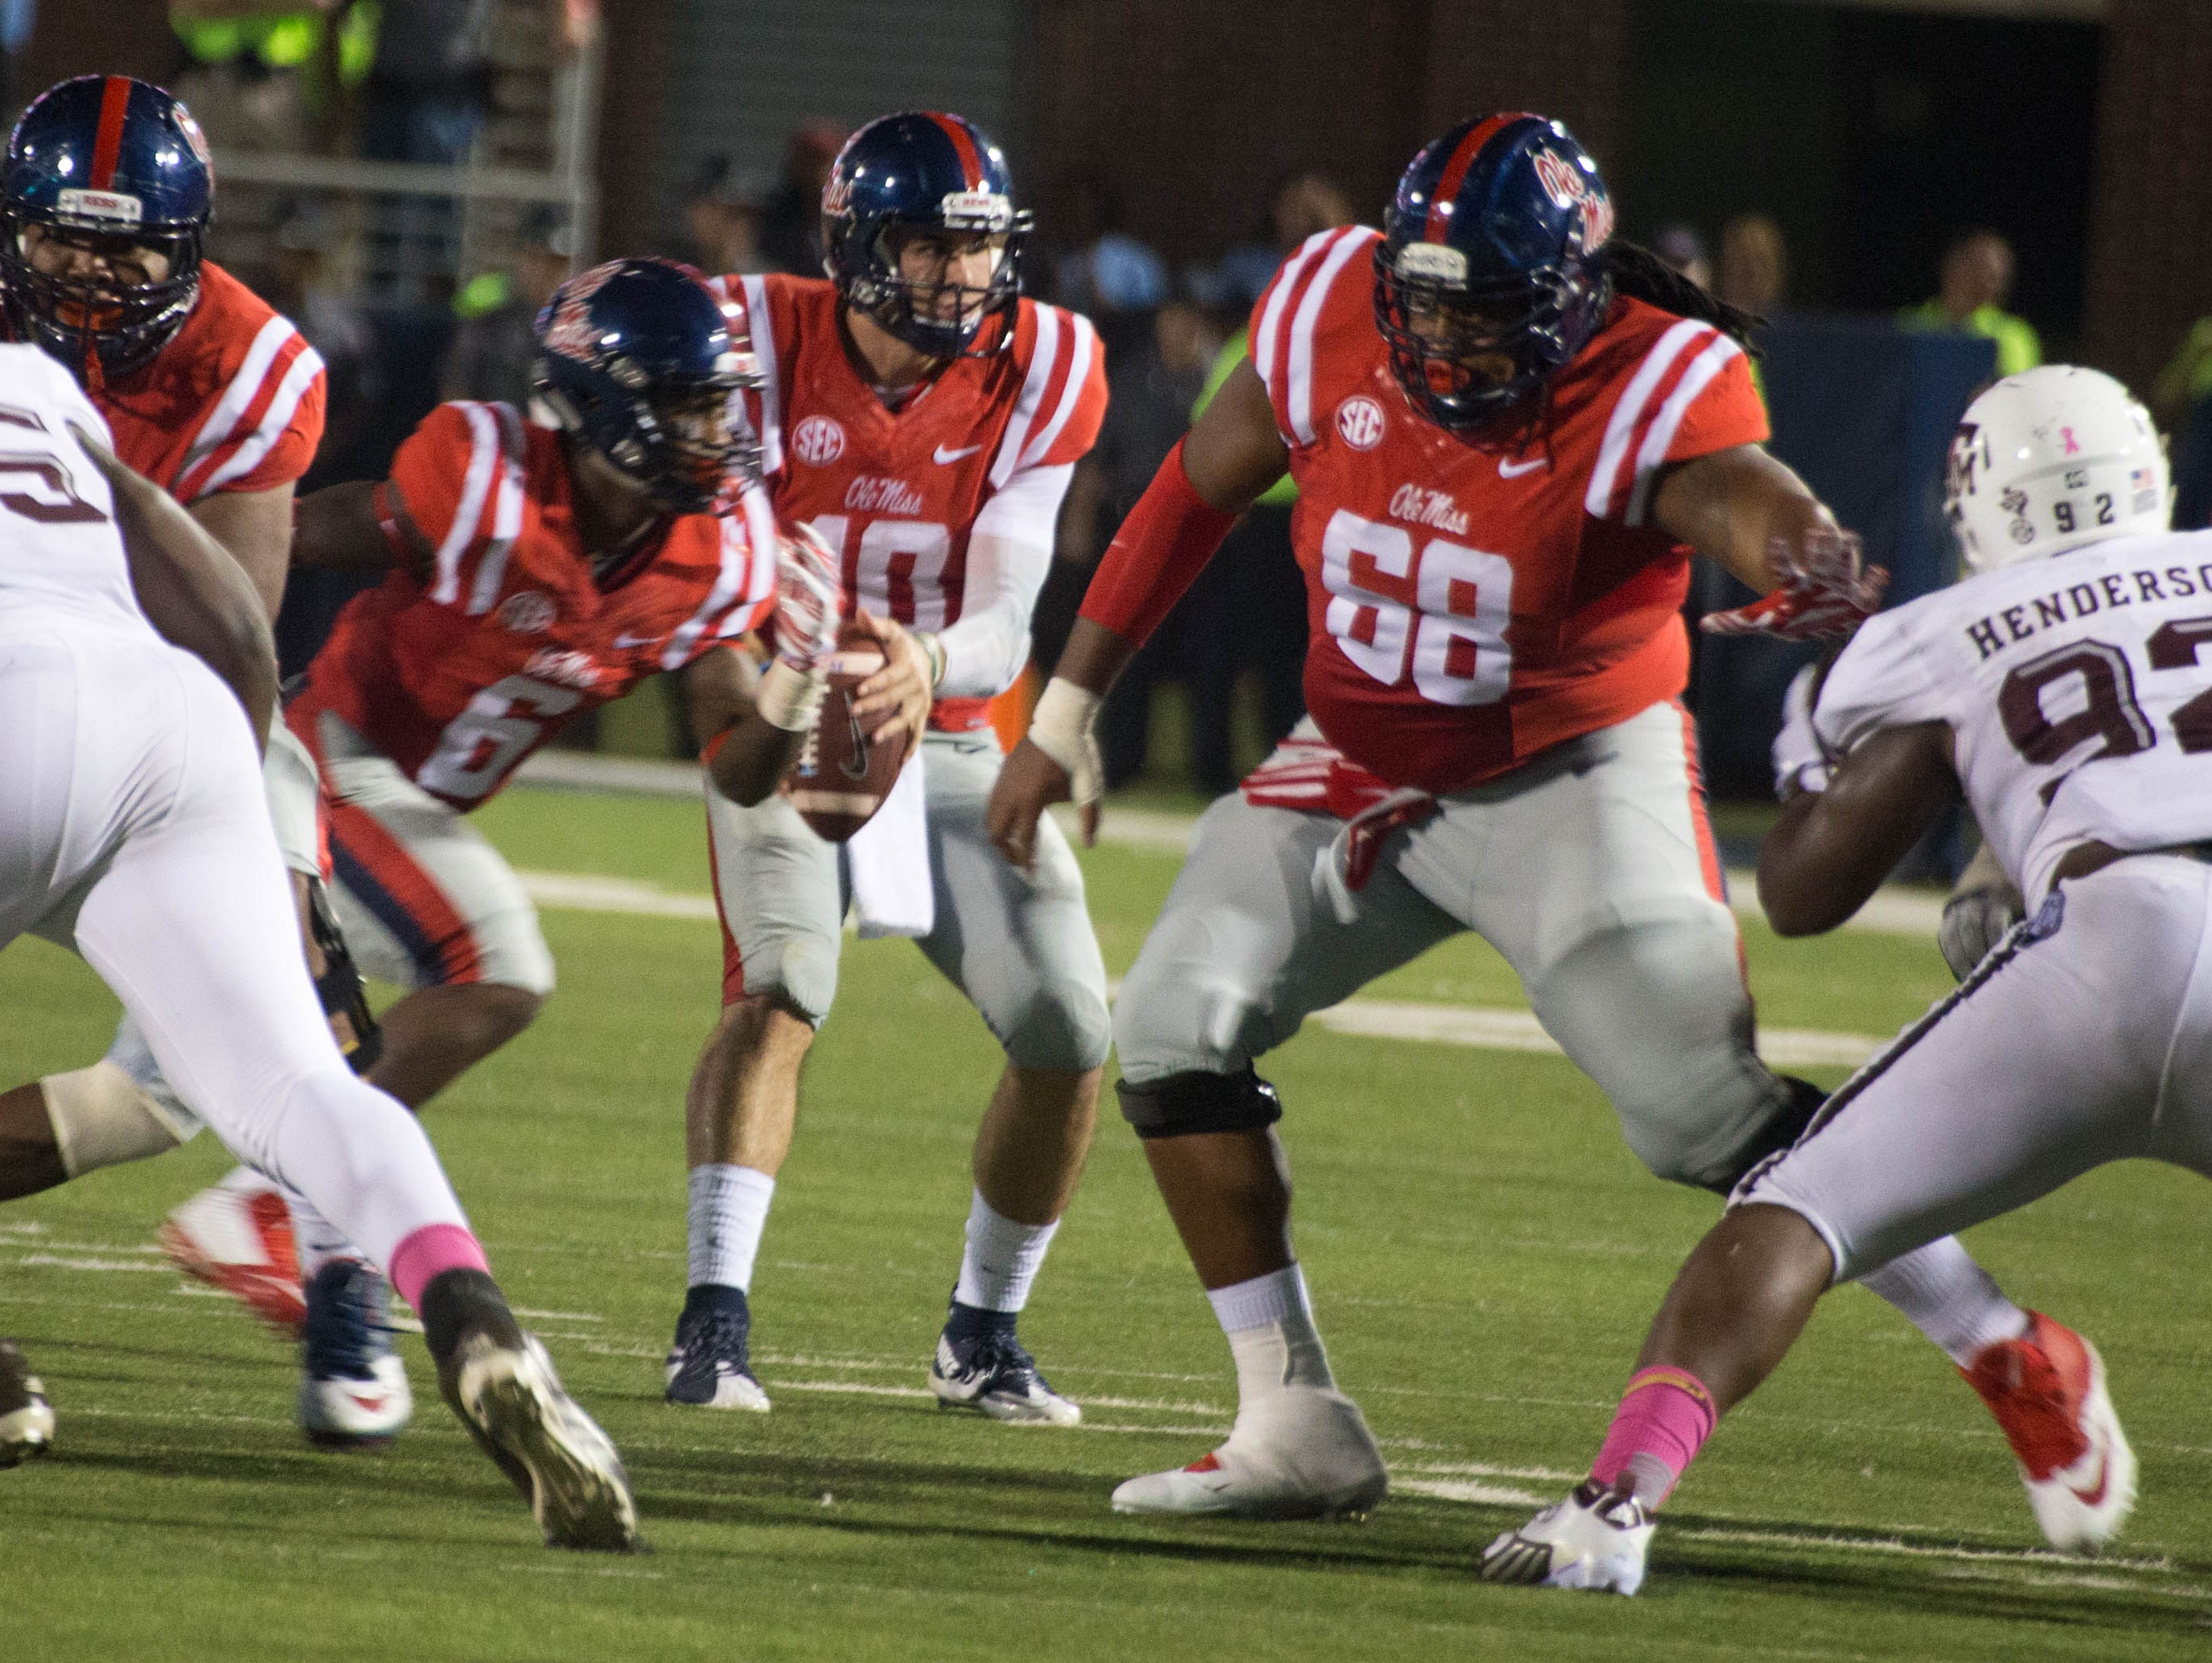 Former Callaway high school player Justin Bell hikes the ball and protects Chad Kelly from Zaycoven Henderson.